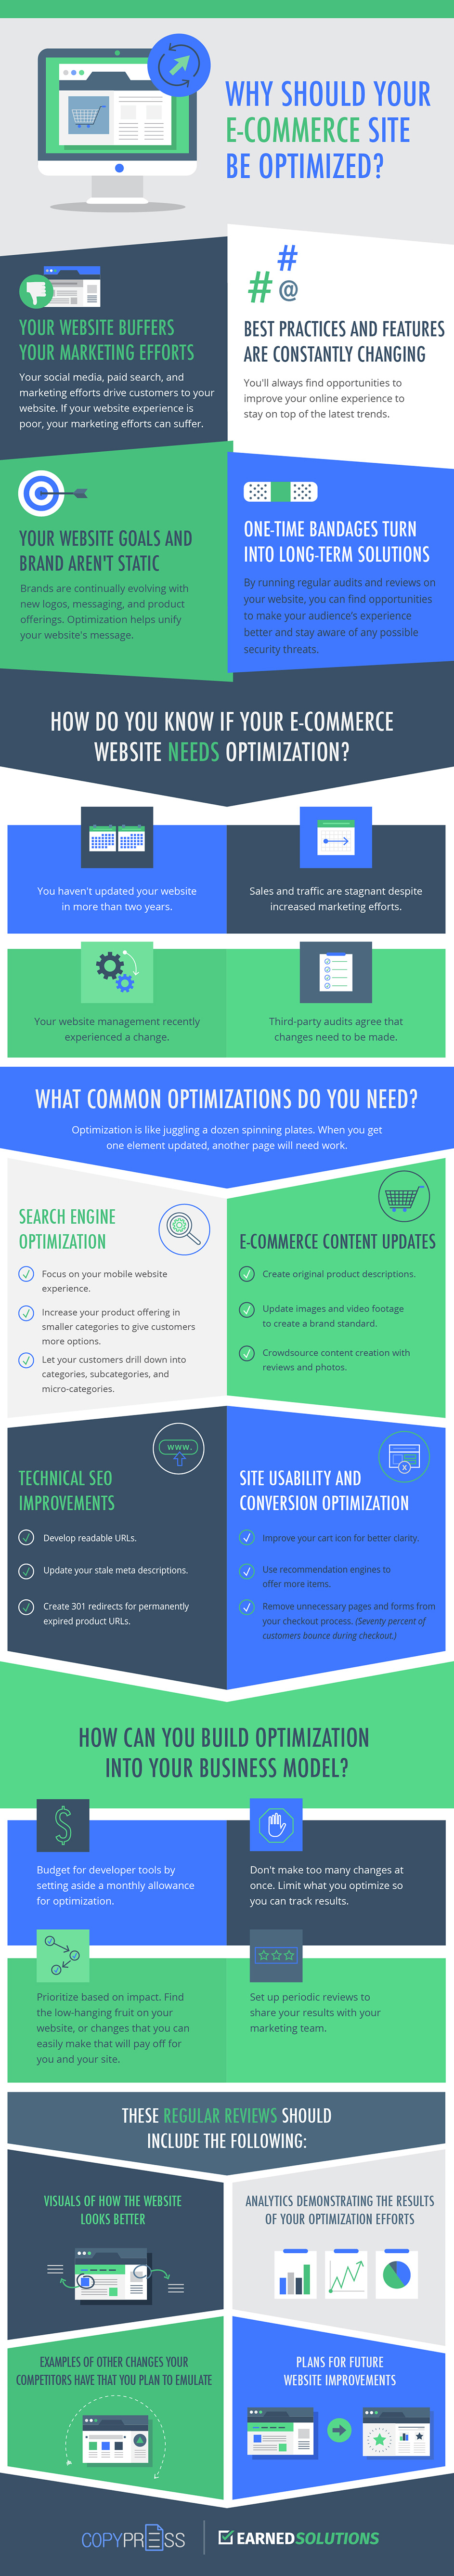 Ecommerce Optimization Infographic.jpg